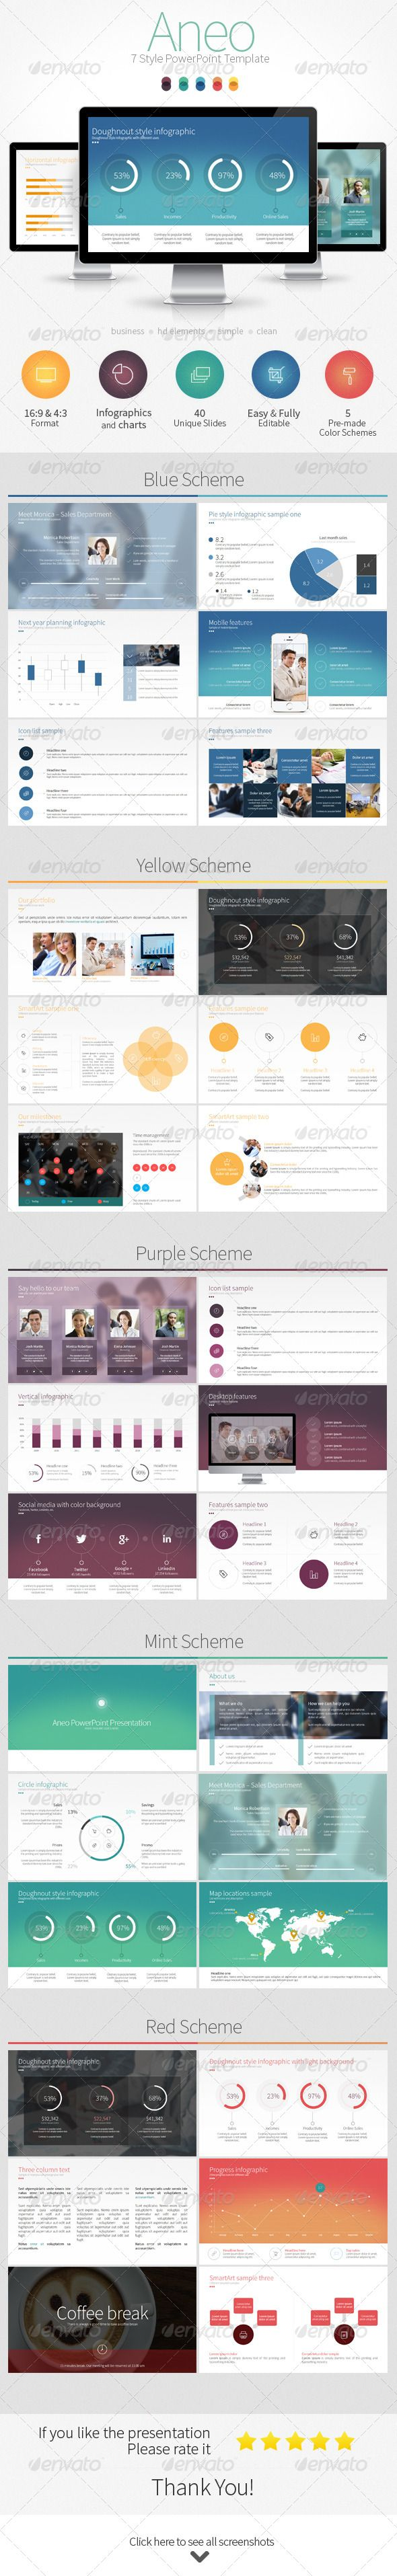 Aneo - 7 Style PowerPoint Template